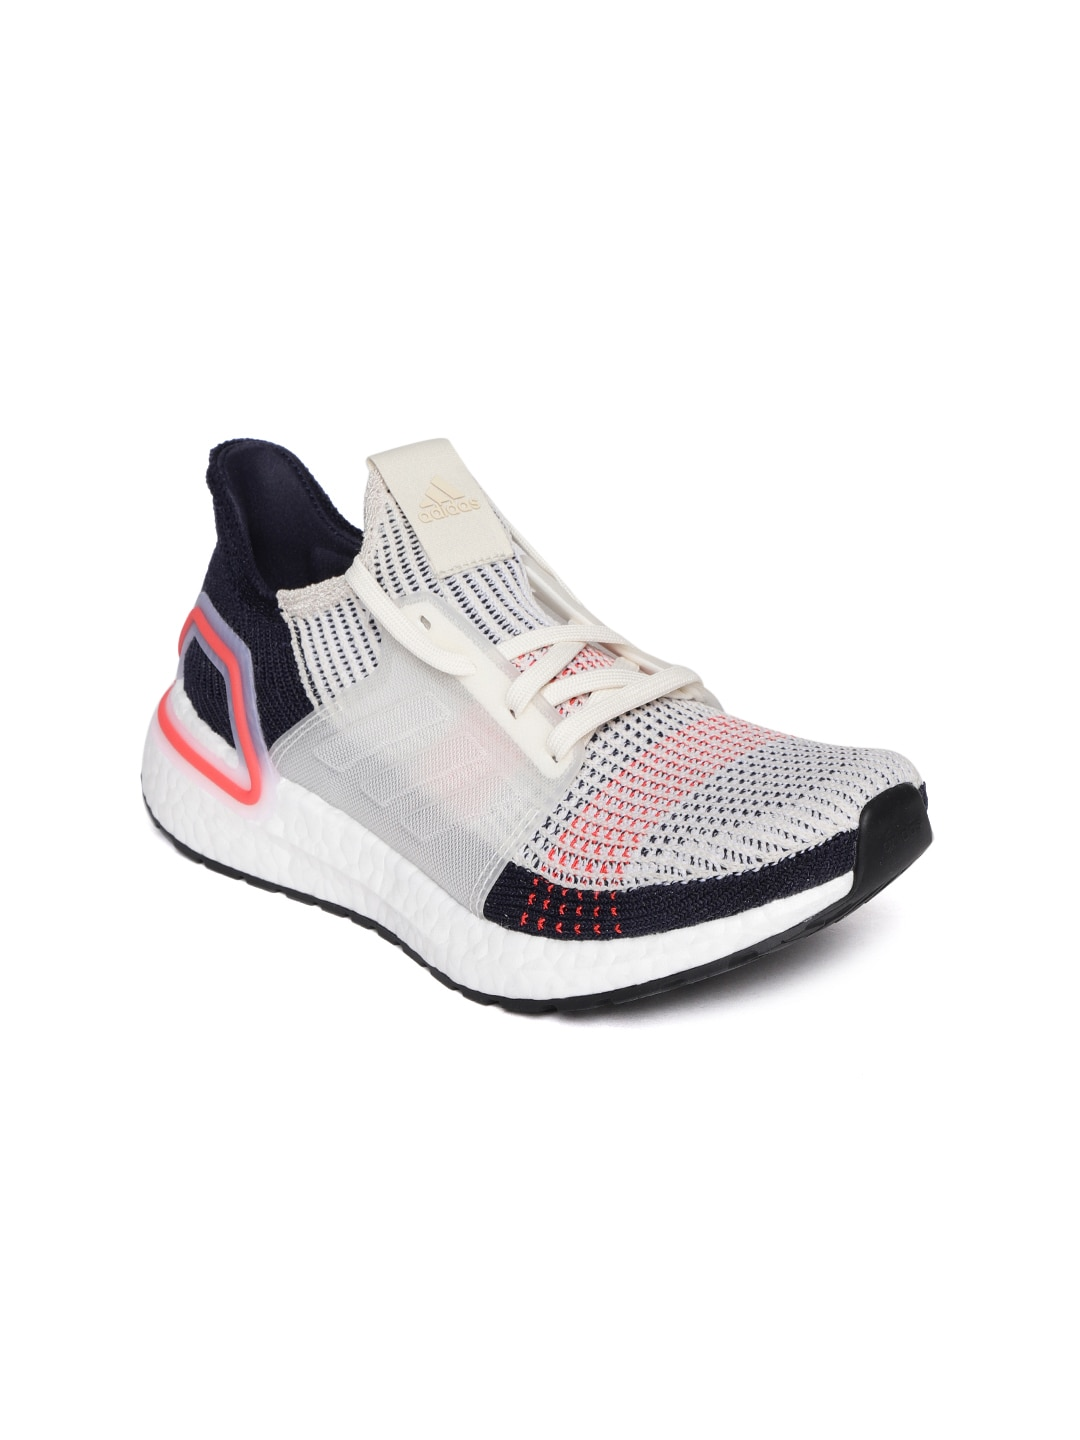 3701874ca Adidas Ultraboost - Buy Adidas Ultraboost online in India